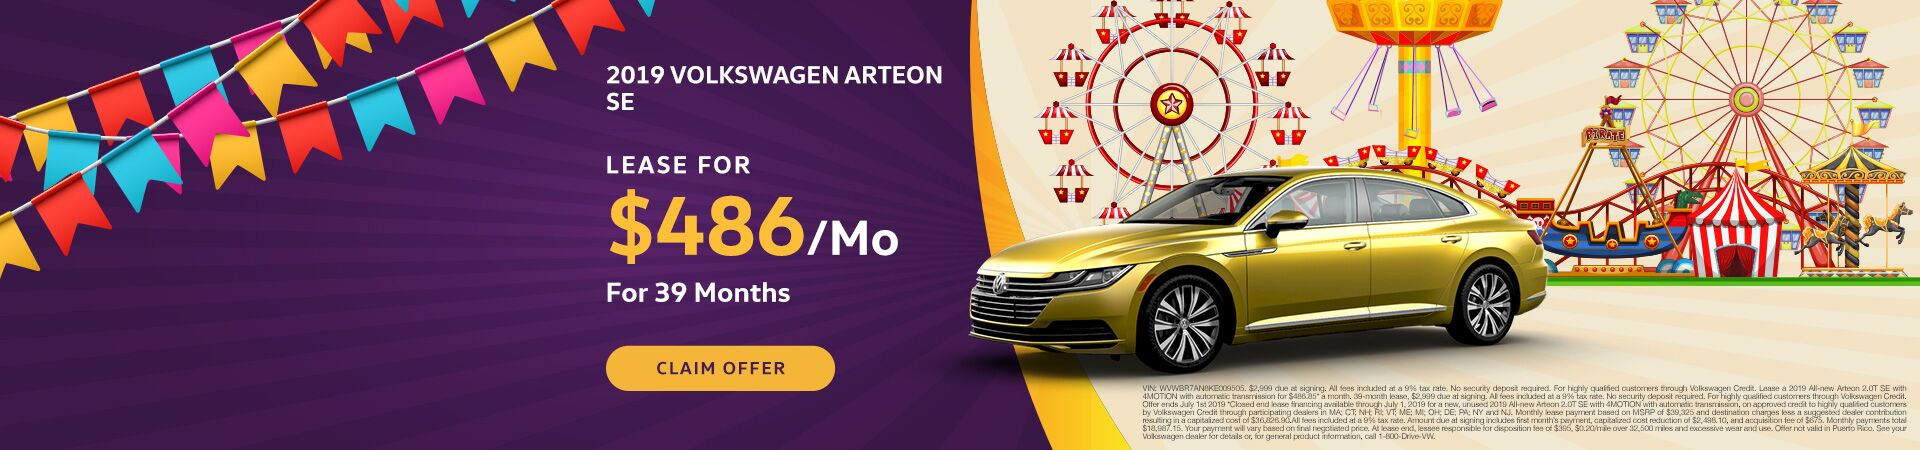 2019 June Arteon Offer